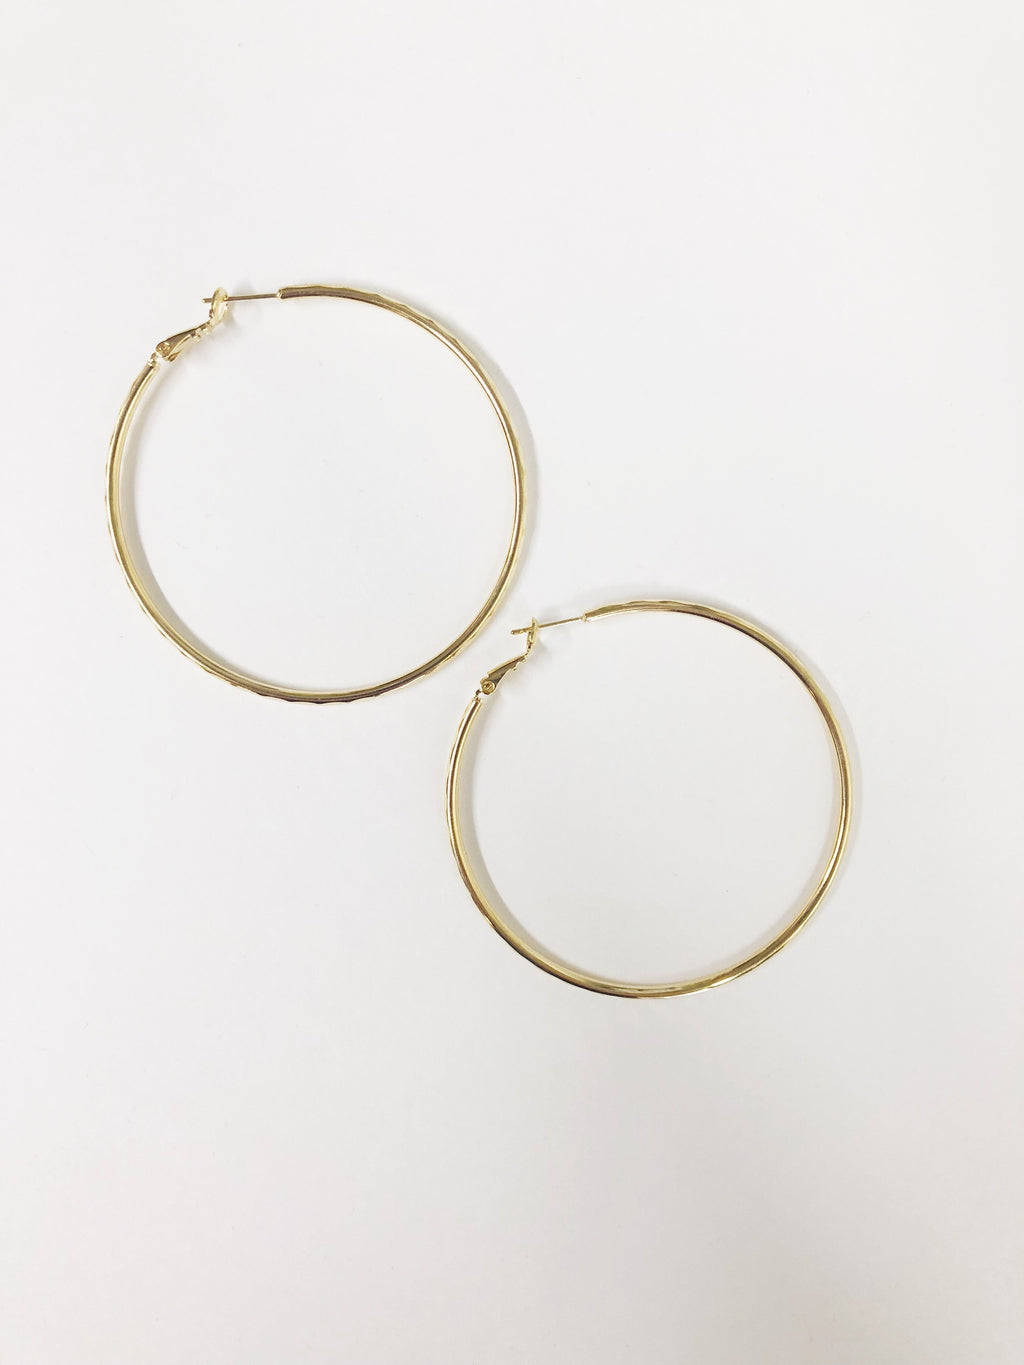 Holla Back Girl Hoop - Gold